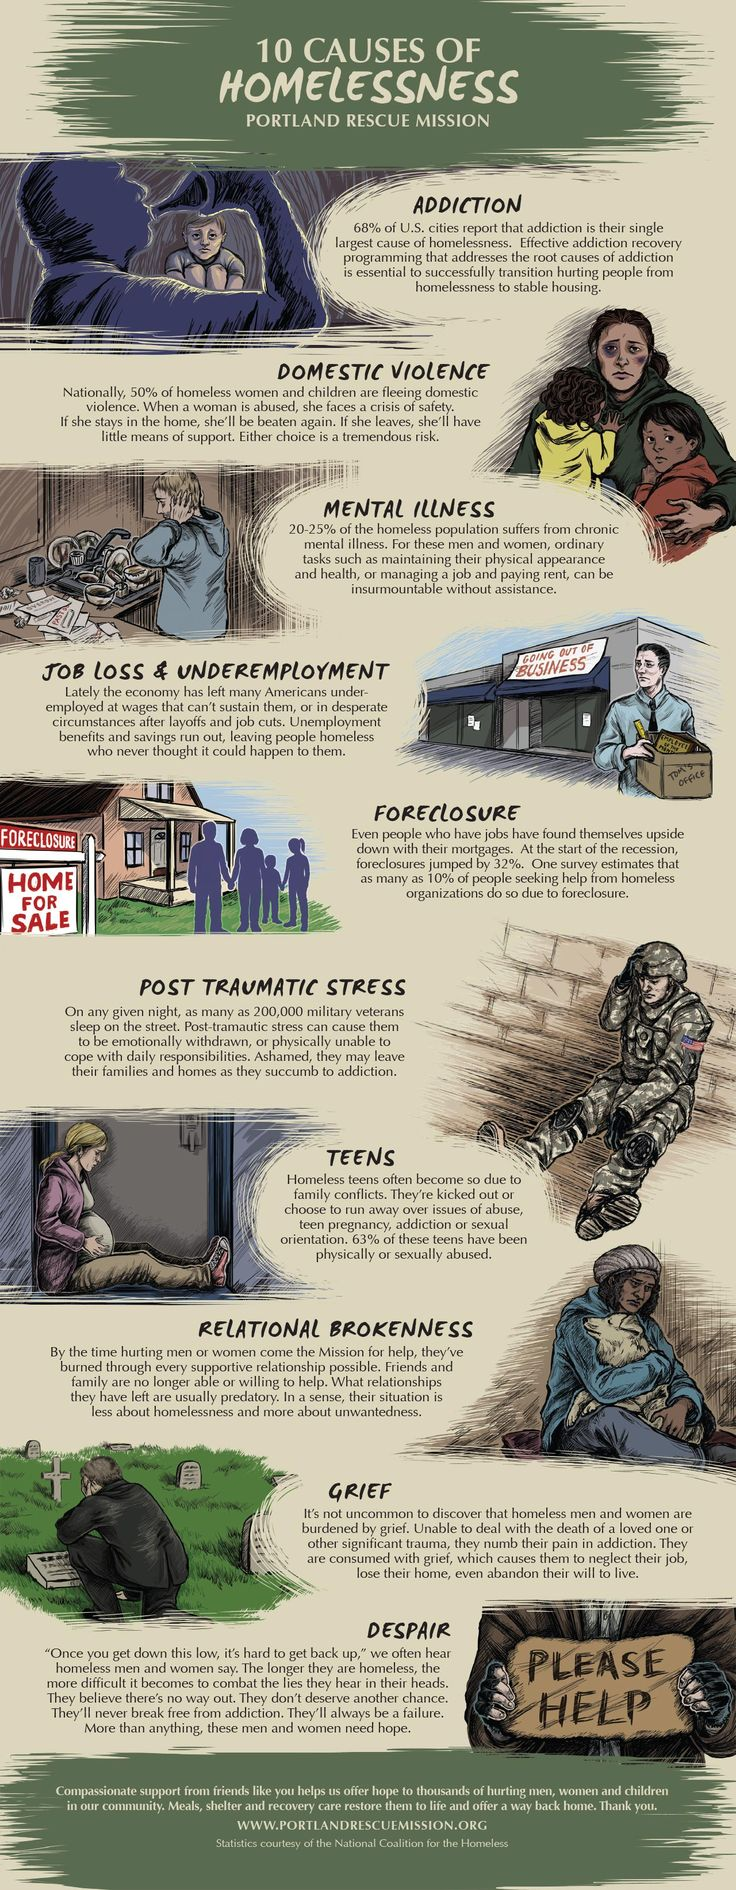 """10 Causes of Homelessness"" #infographic - some triggers of #homelessness"